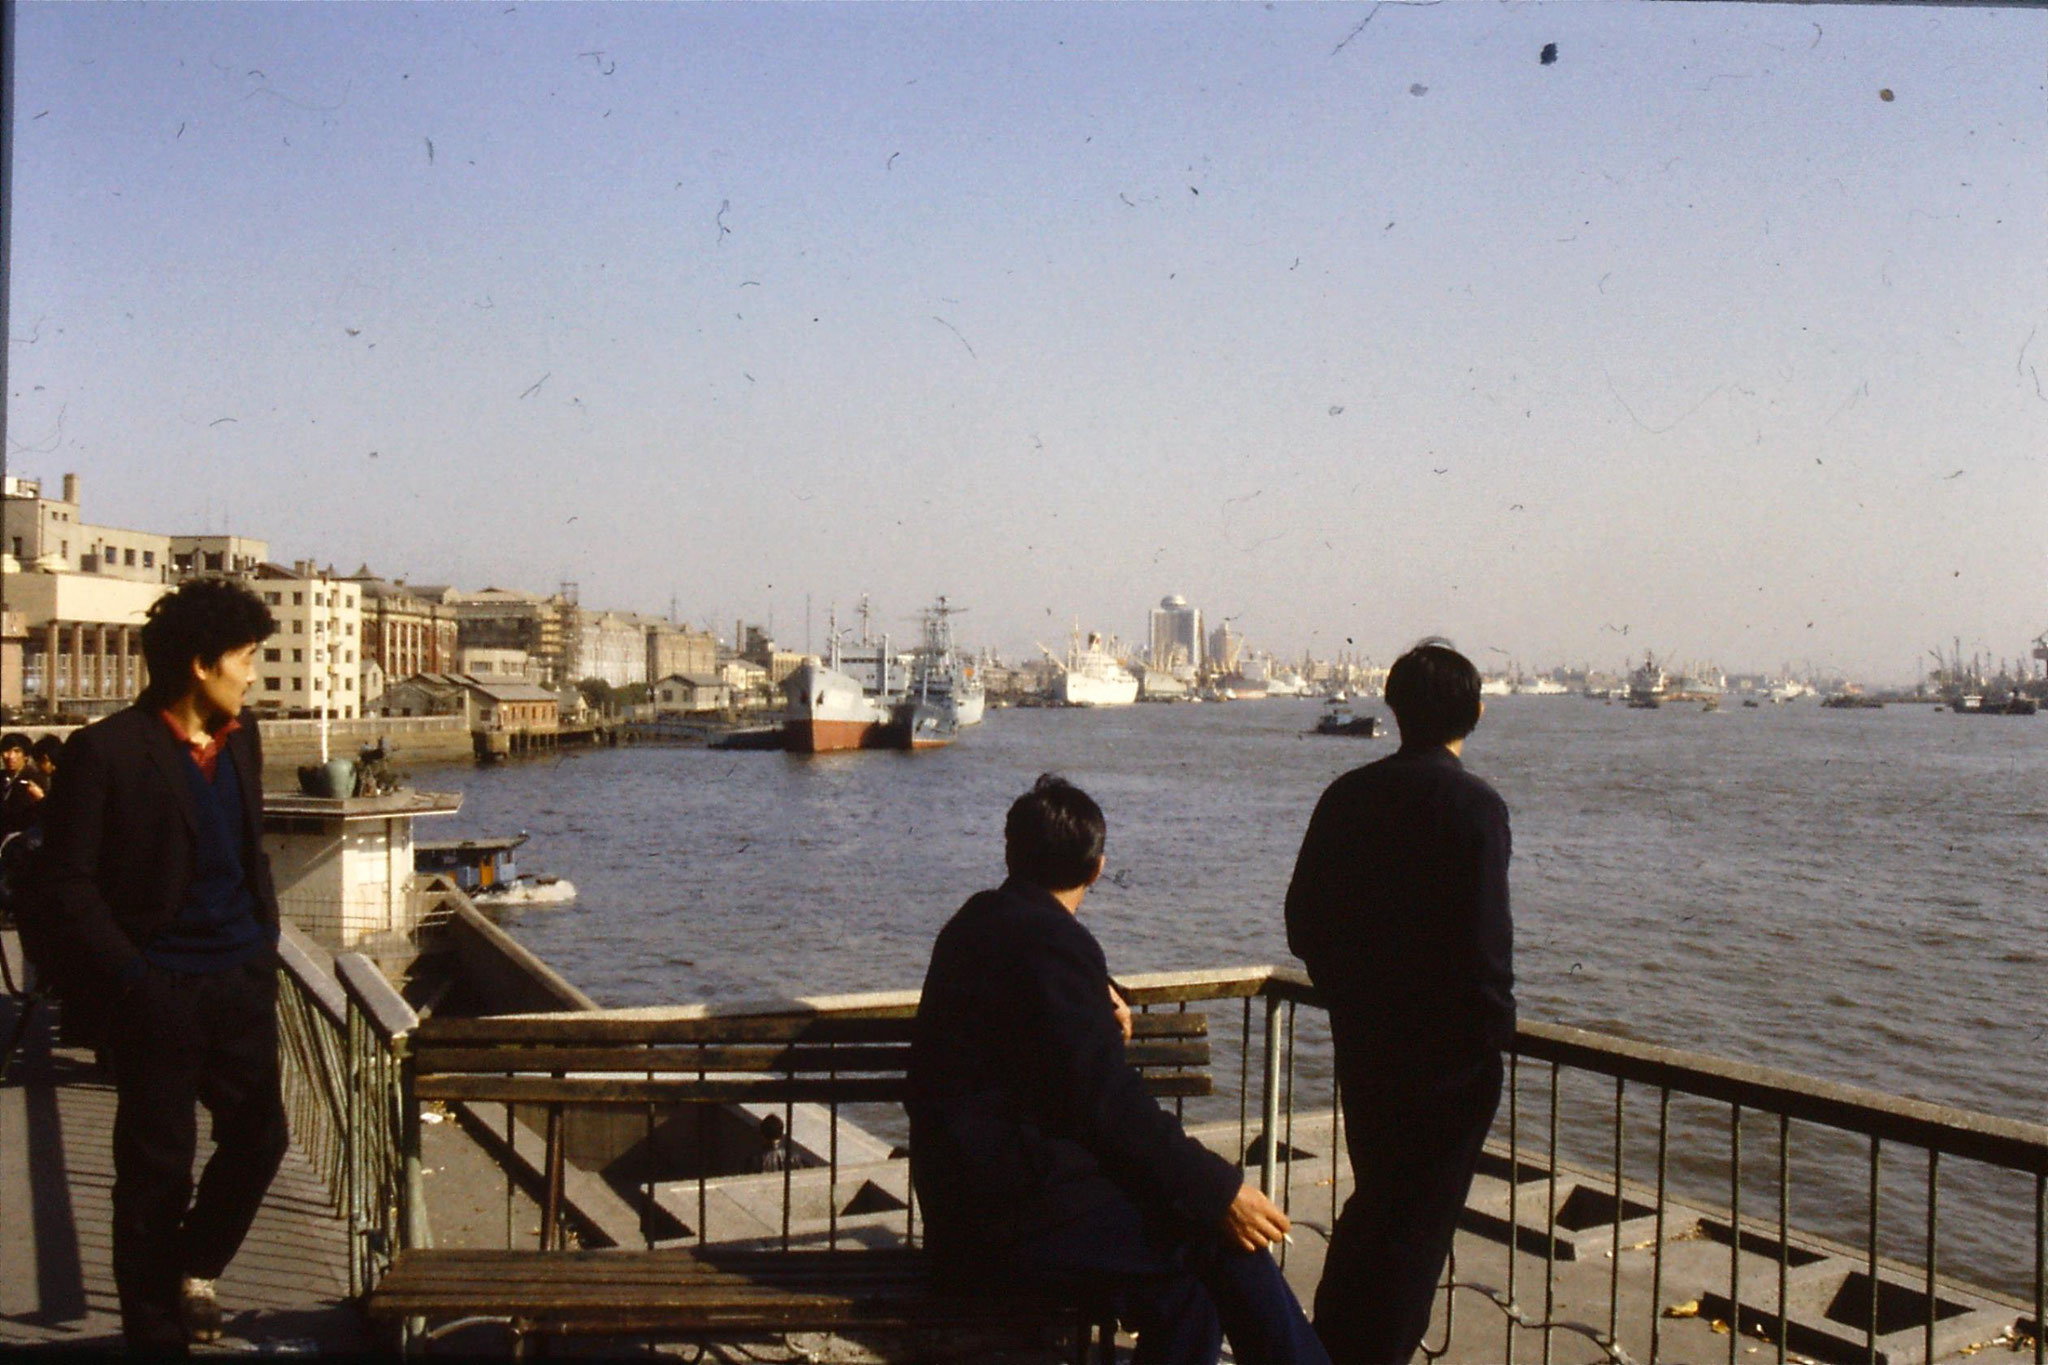 14/12/1988: 6: Shanghai looking down main river